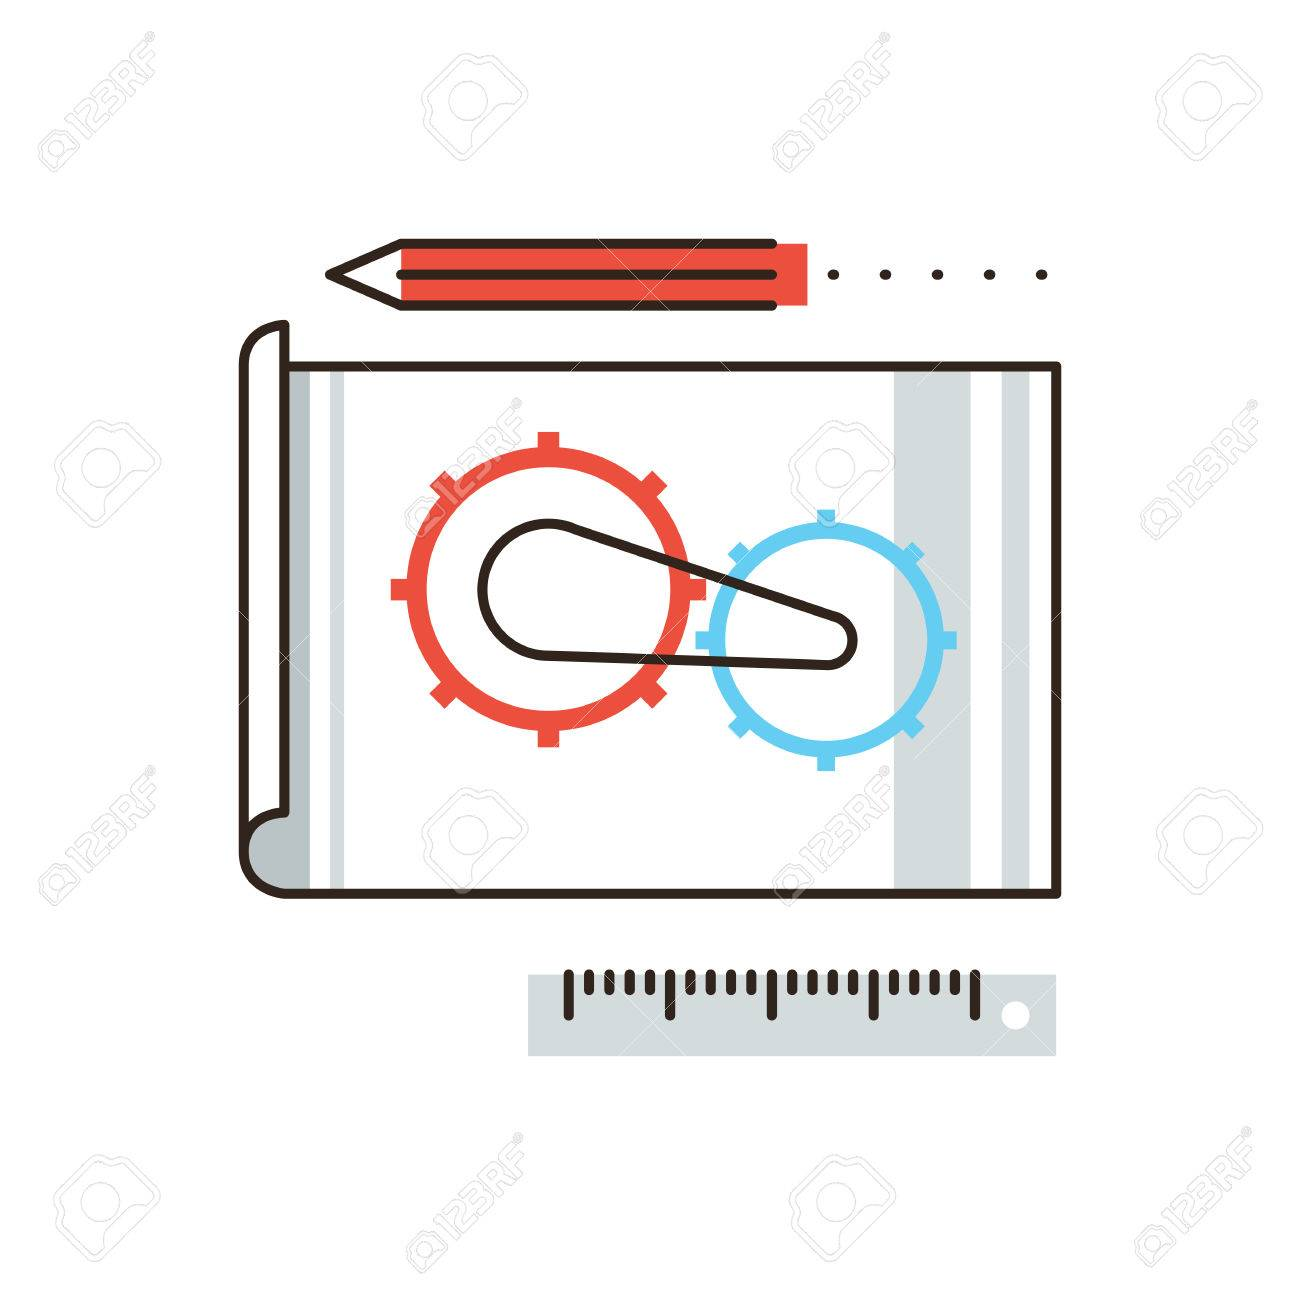 Thin line icon with flat design element of engineering construction thin line icon with flat design element of engineering construction planning cogwheel processing technical malvernweather Choice Image